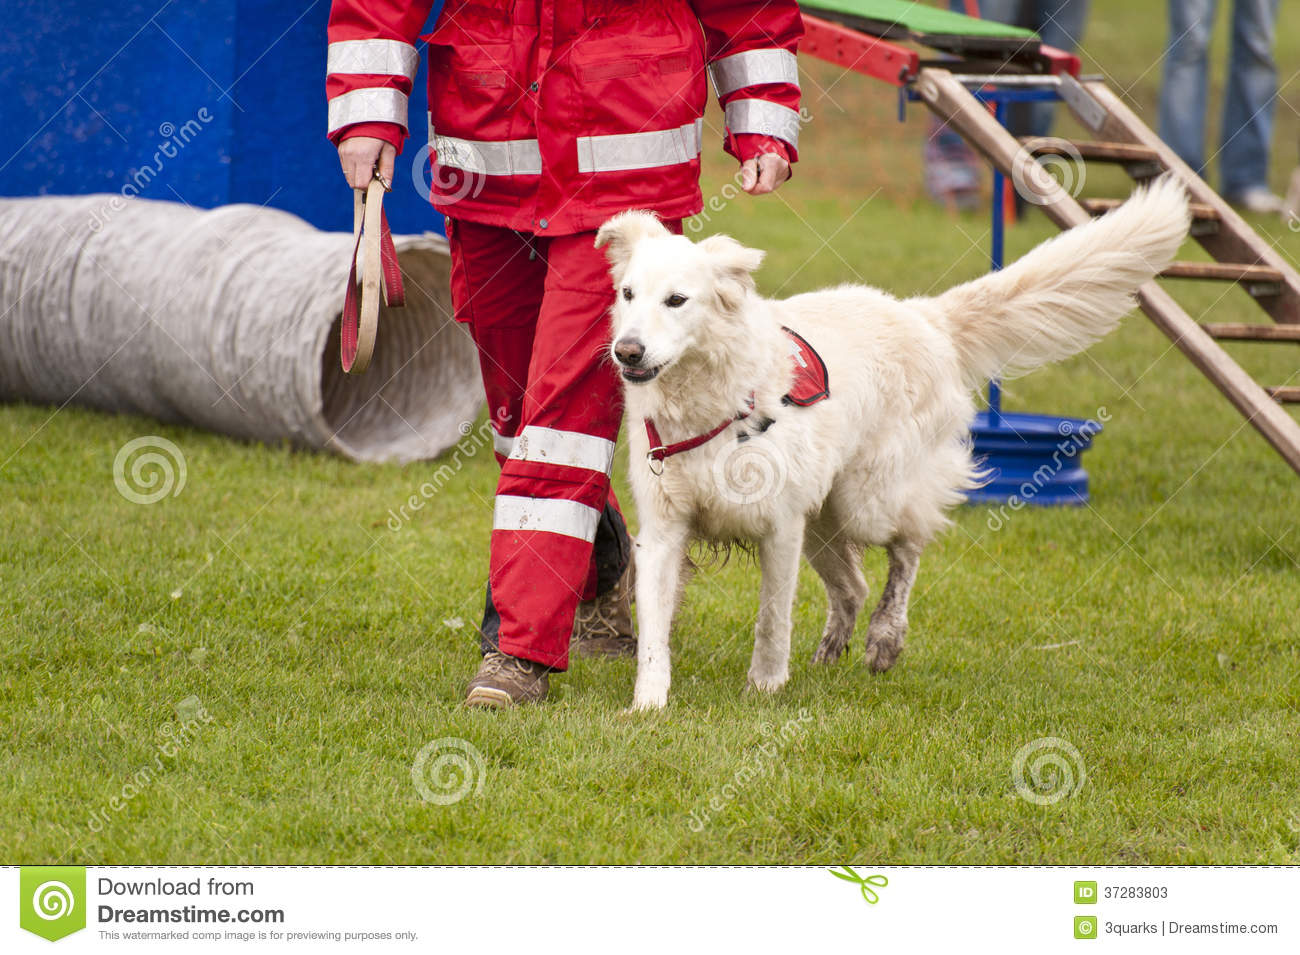 Download Rescue Dog stock image. Image of protection, lifesaving - 37283803